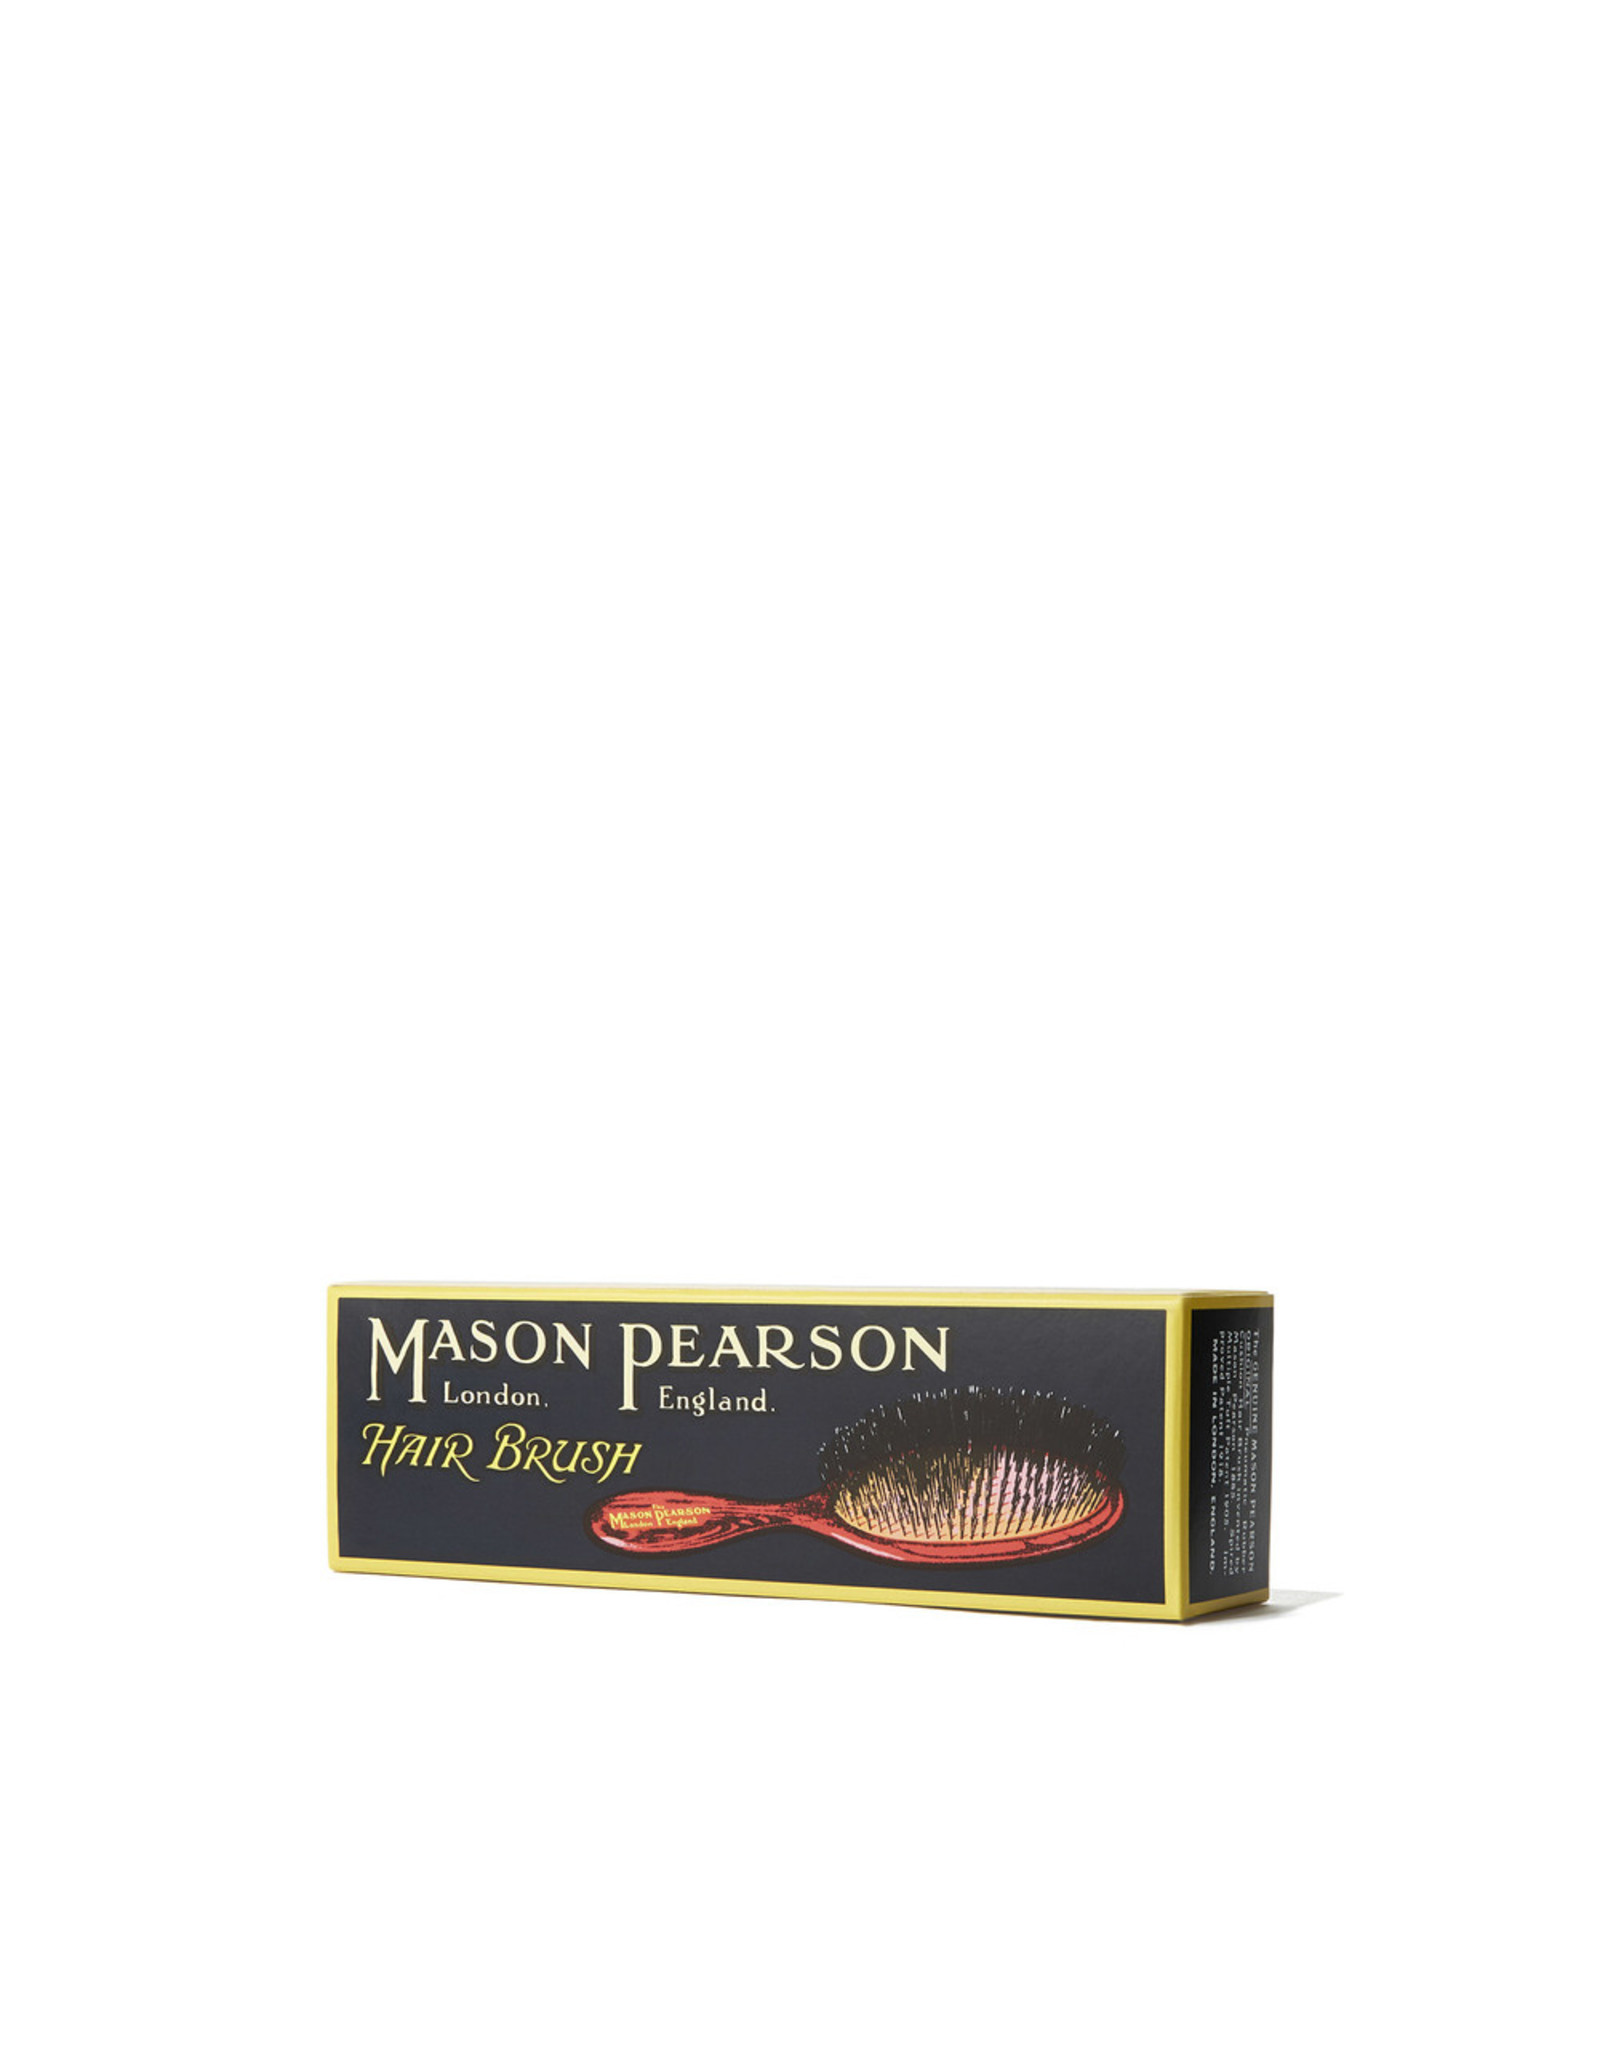 Mason Pearson The Pocket Mixture Brush